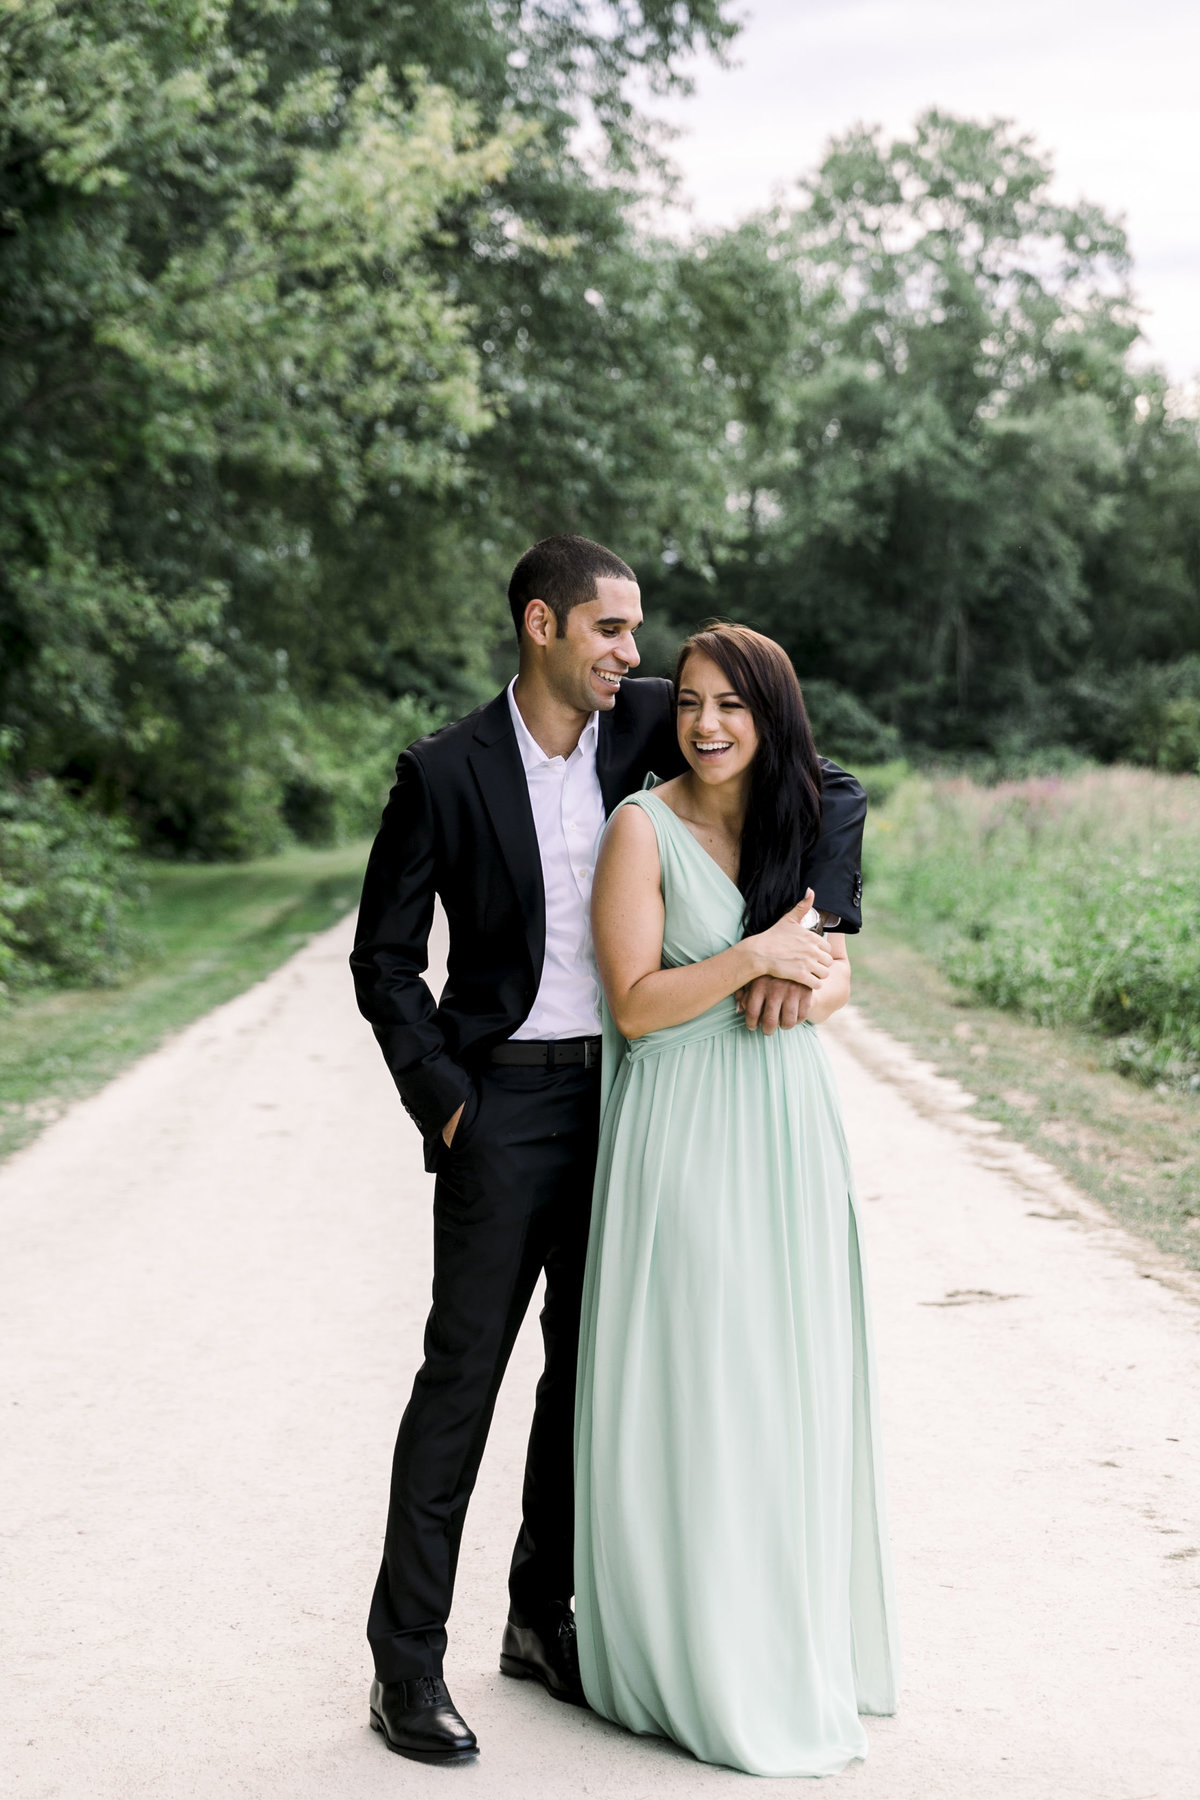 Old-North-Bridge-Concord-engagementphotography00263